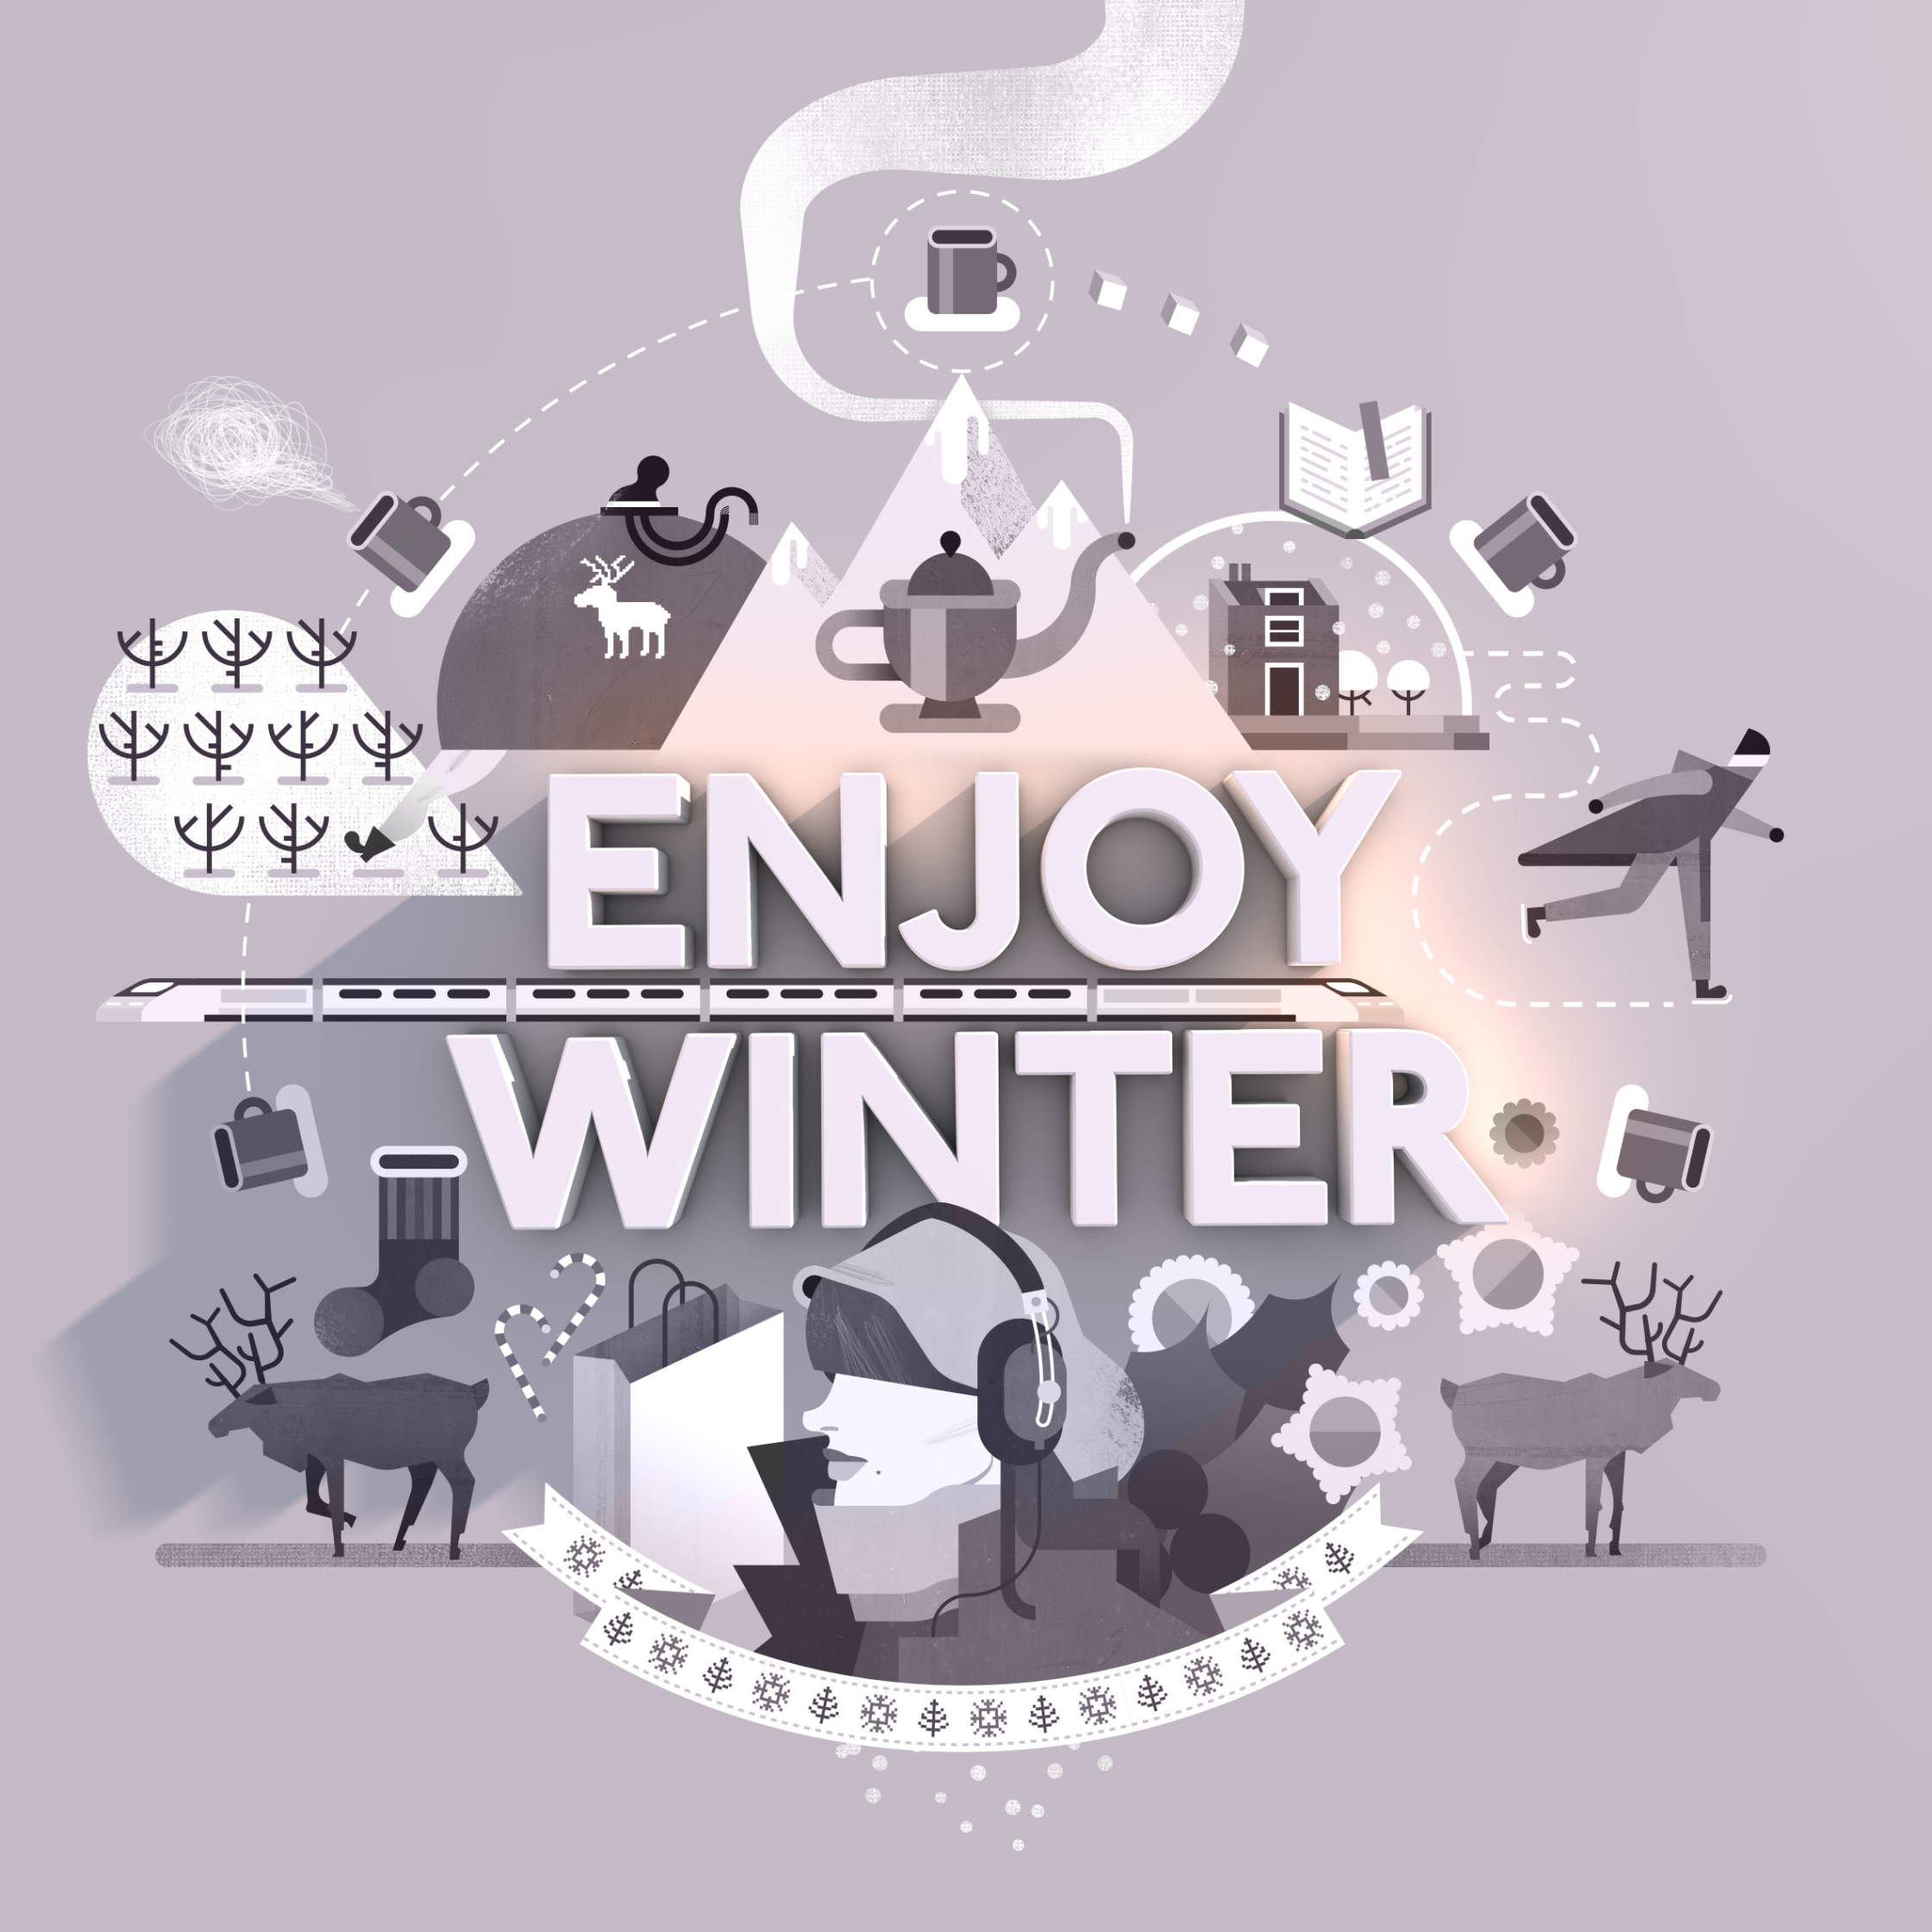 28_Enjoy_Winter.jpg